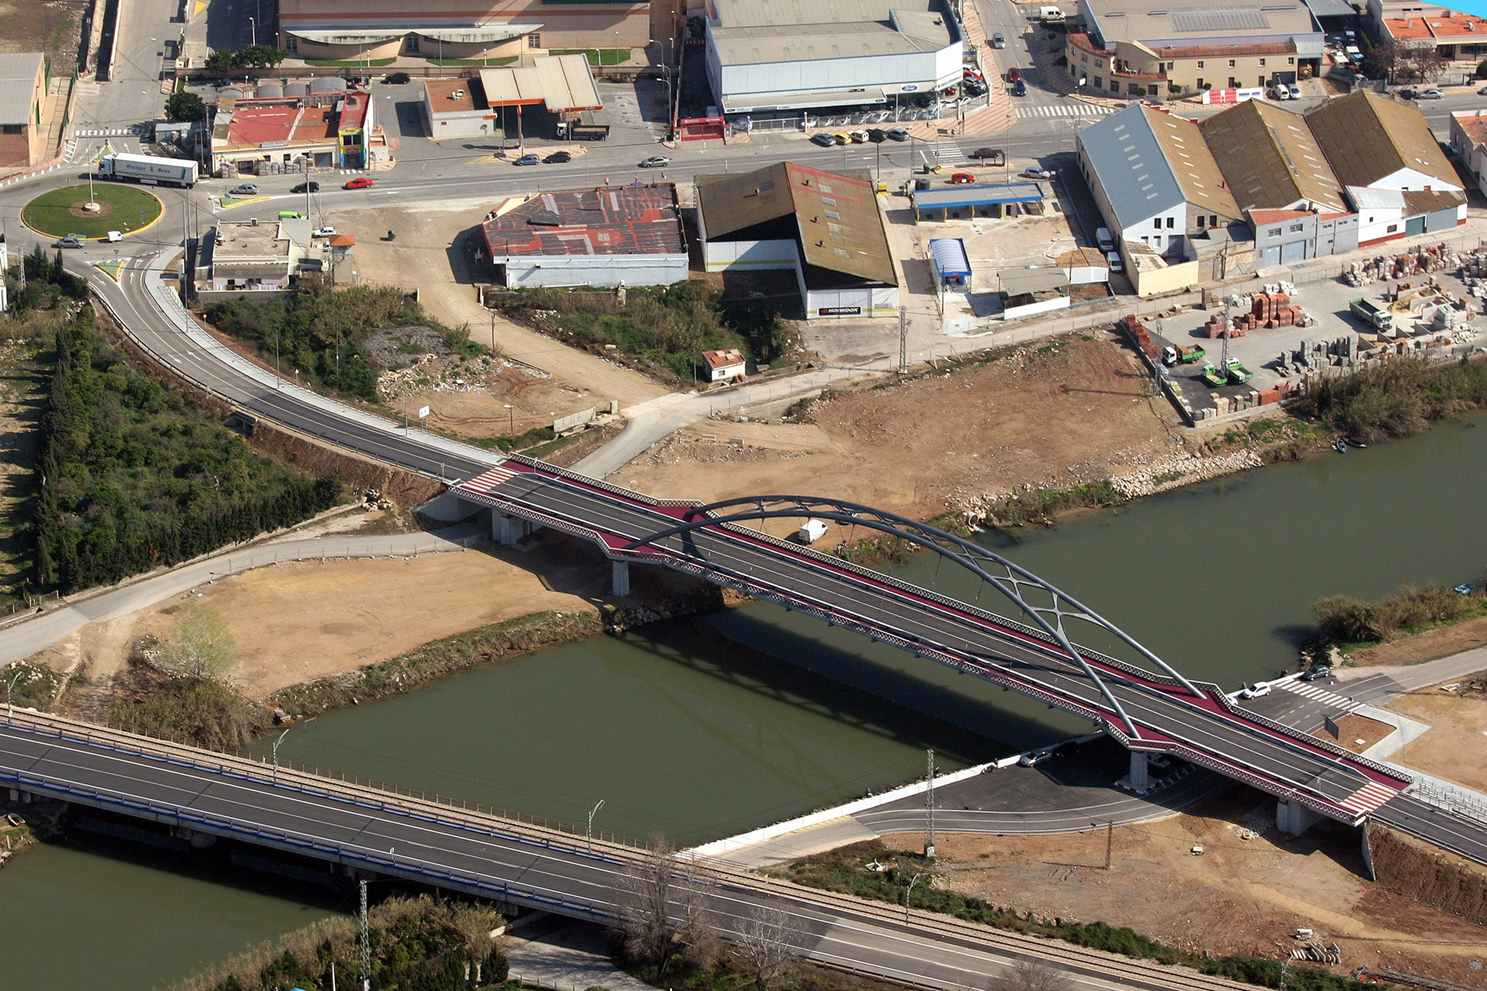 https://zeppeline.es/wp-content/uploads/2015/09/ingenieria-vista-aerea-puente-video-fotografia-aerea.jpg